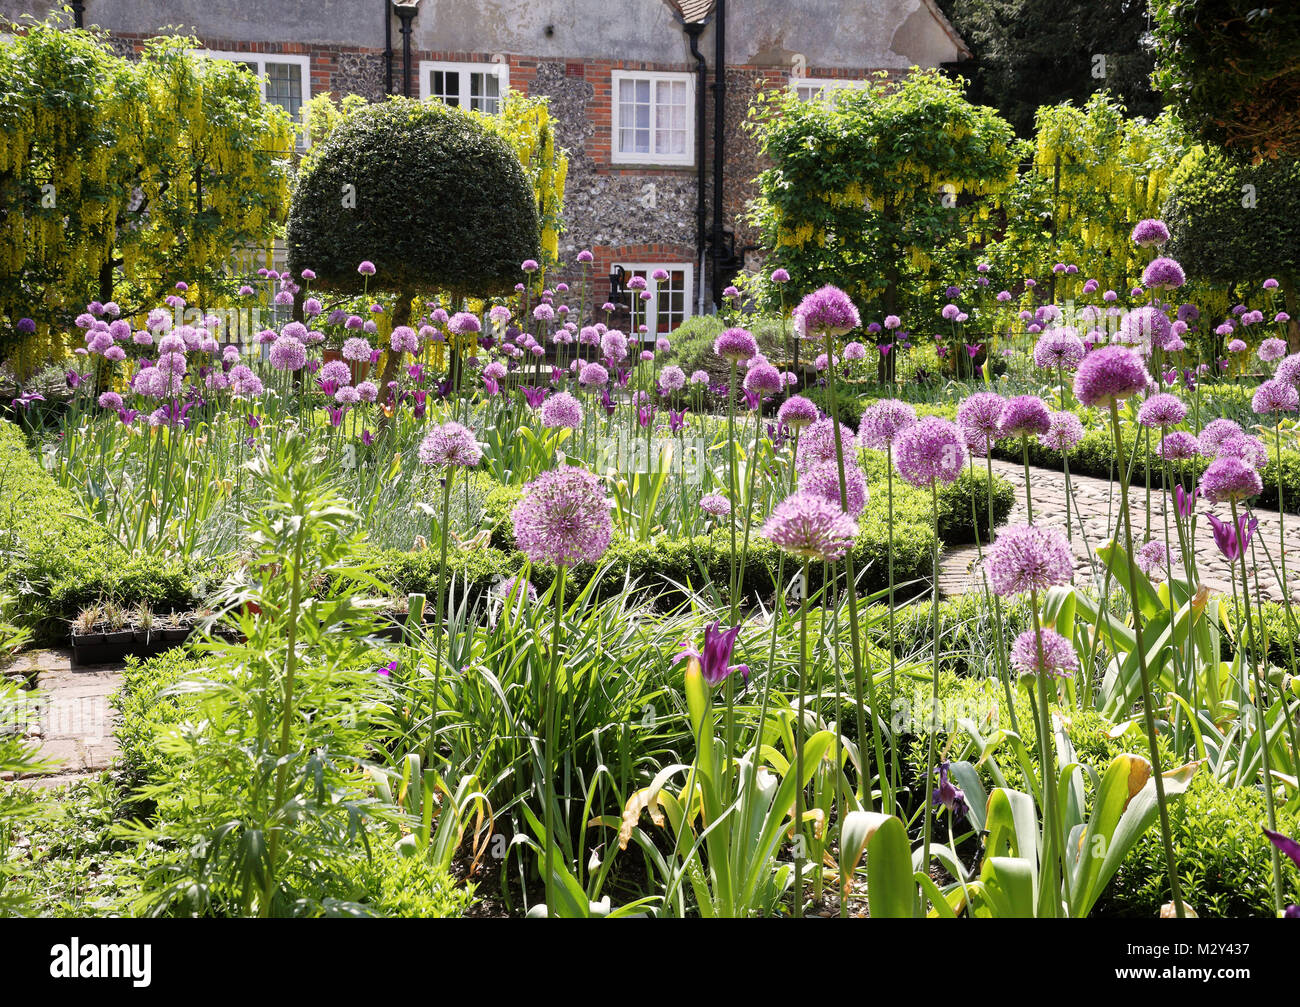 Flowerbeds filled with purple Allium flowers in an English walled garden - Stock Image